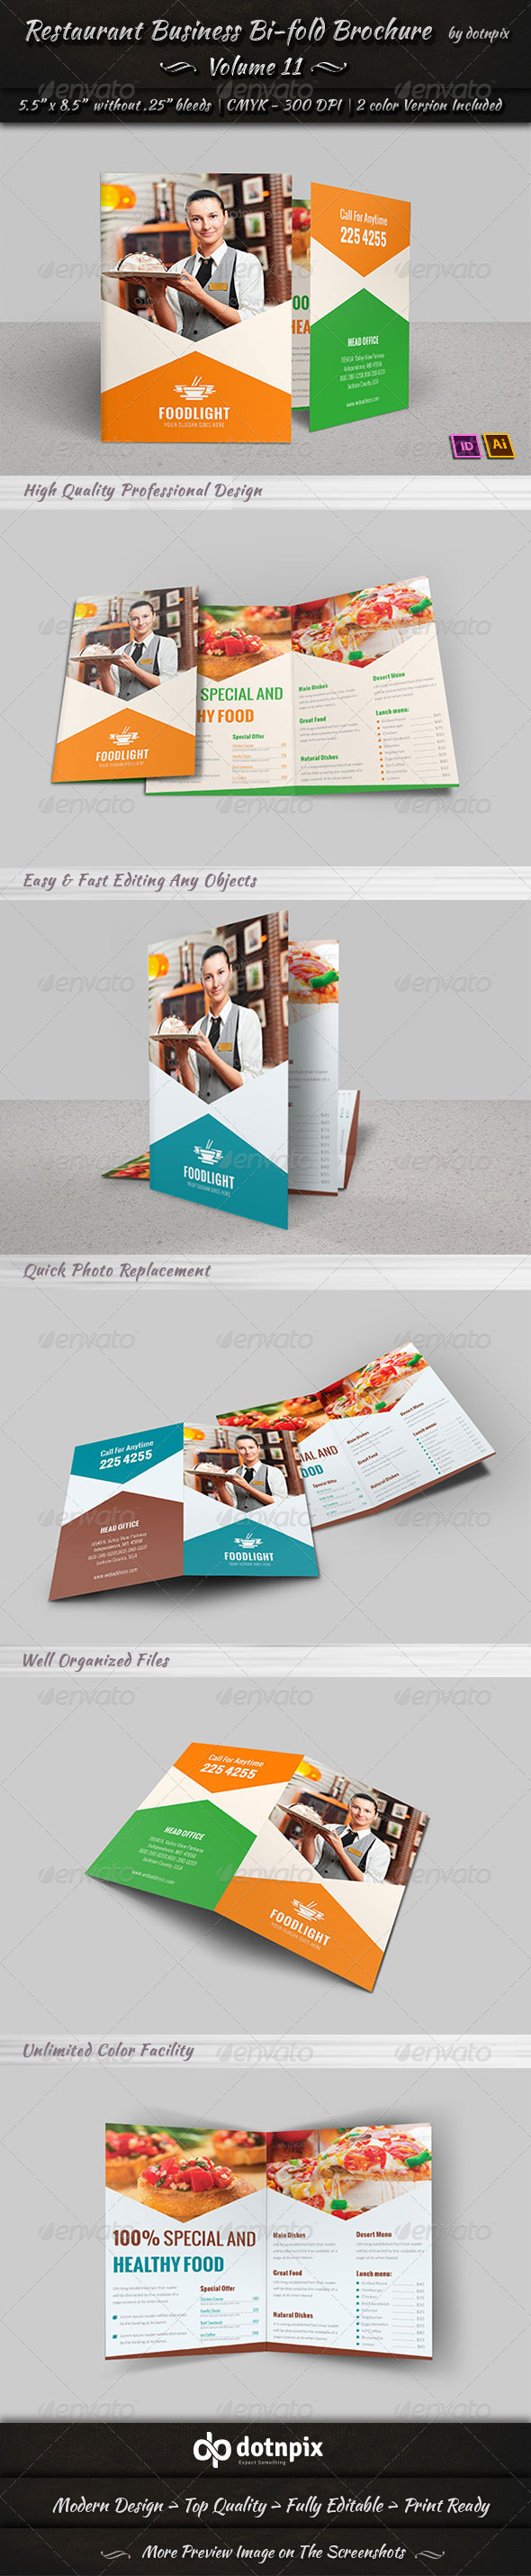 Restaurant Business Bi-Fold Brochure Volume 11